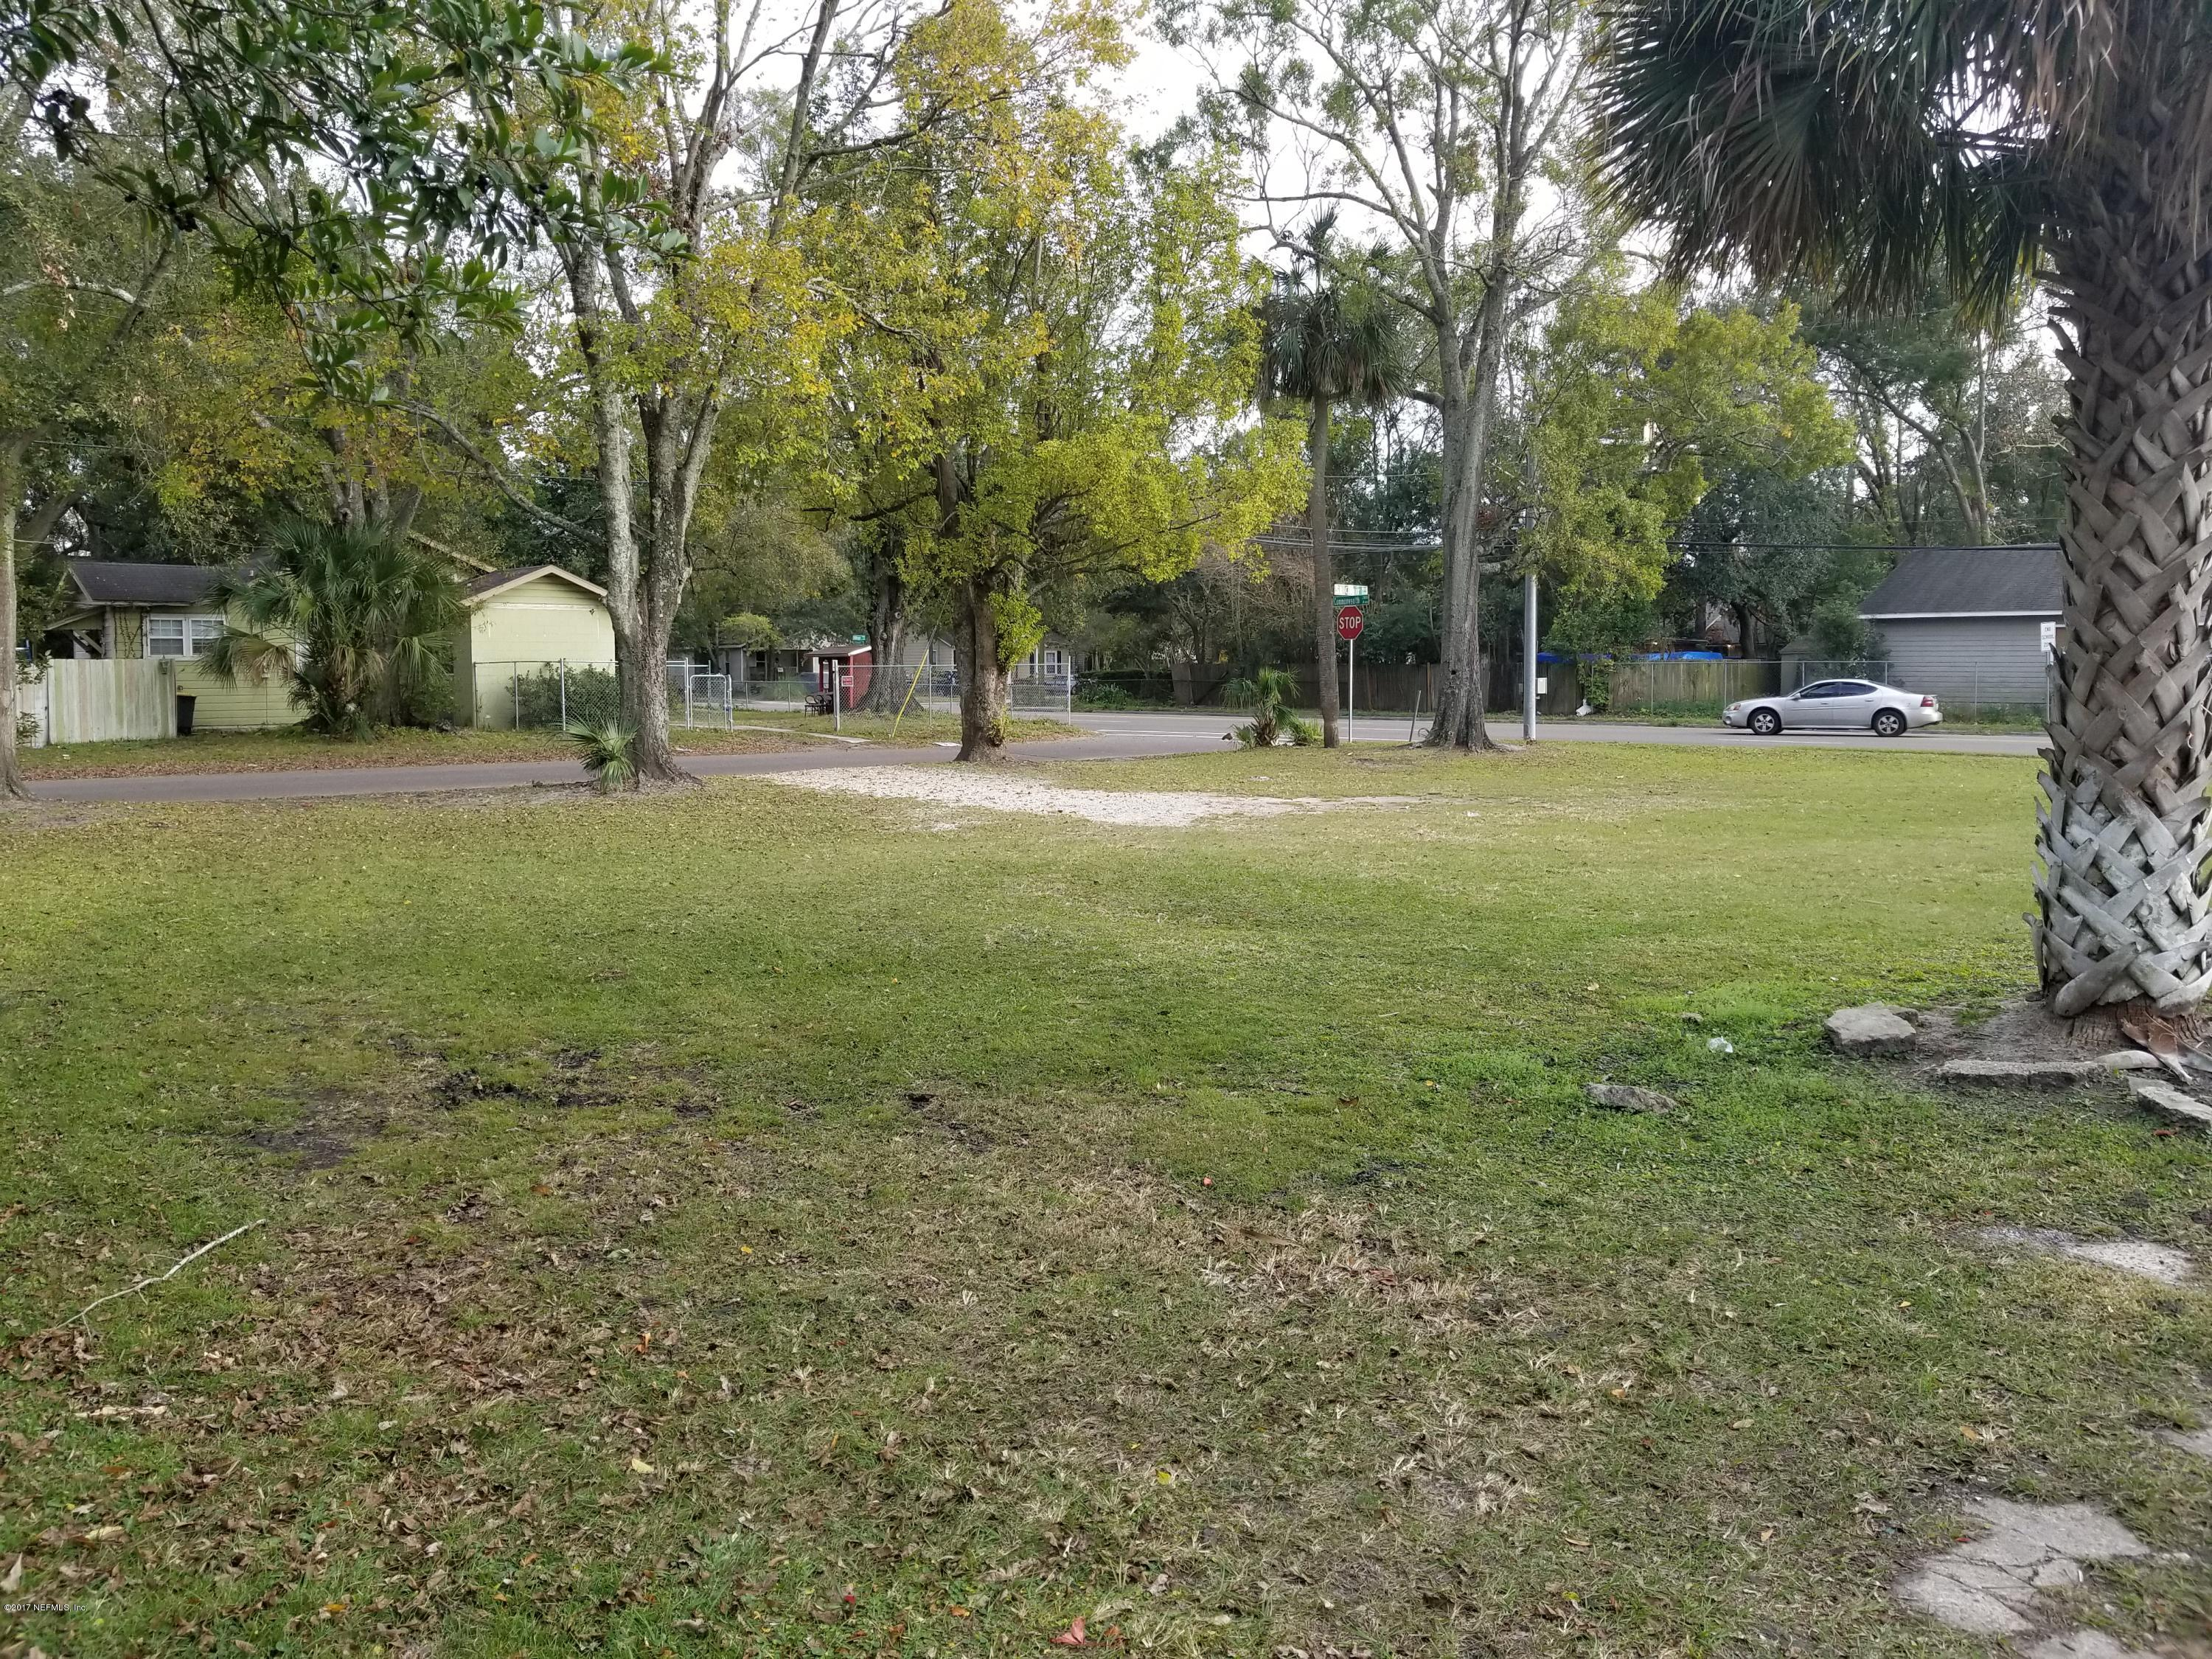 0 COMMONWEALTH, JACKSONVILLE, FLORIDA 32254, ,Vacant land,For sale,COMMONWEALTH,912650